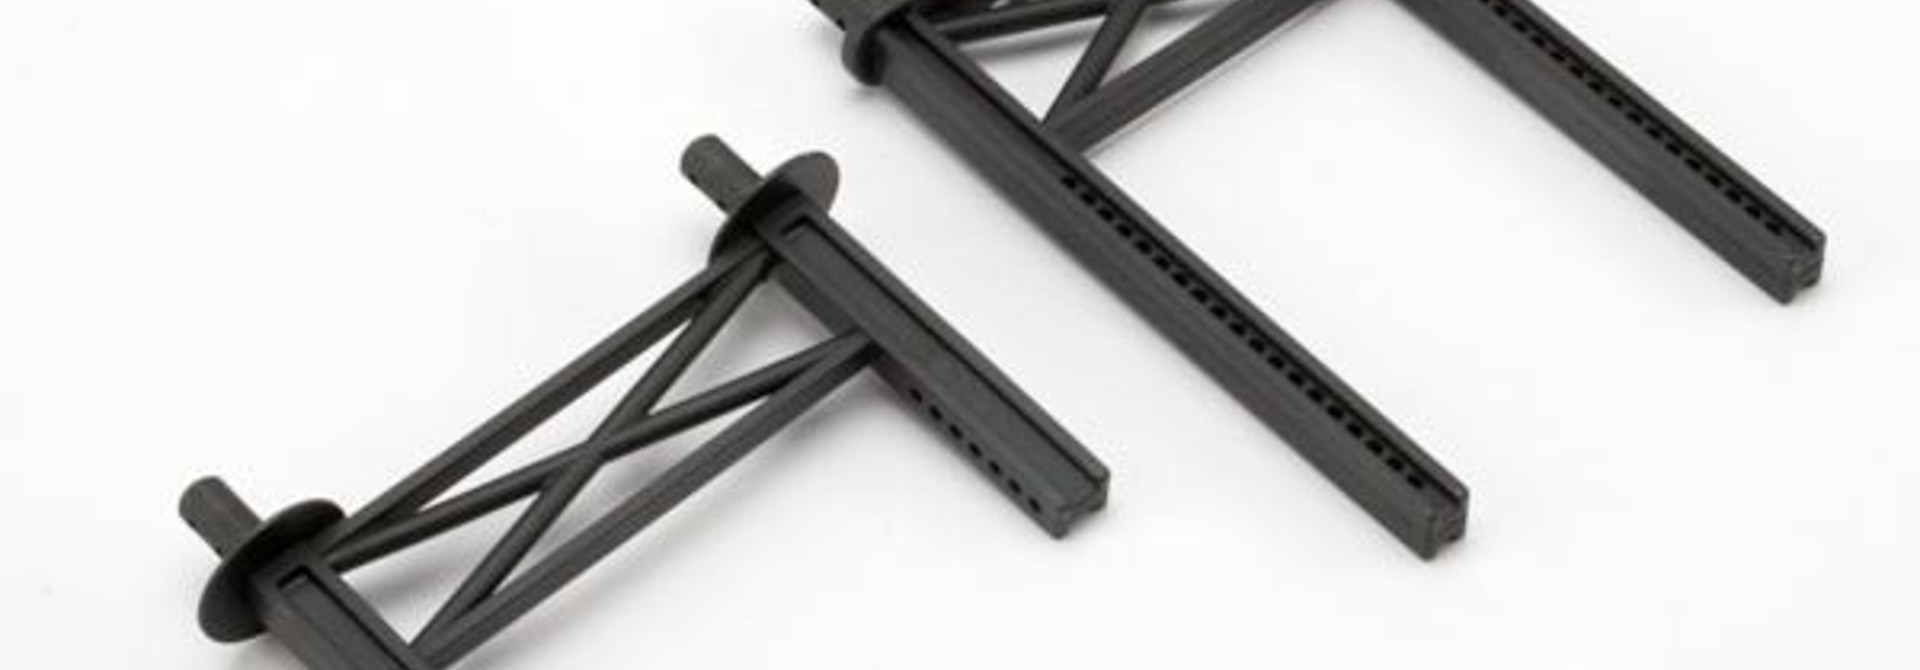 Body mount posts, front & rear (tall, for Summit), TRX5616